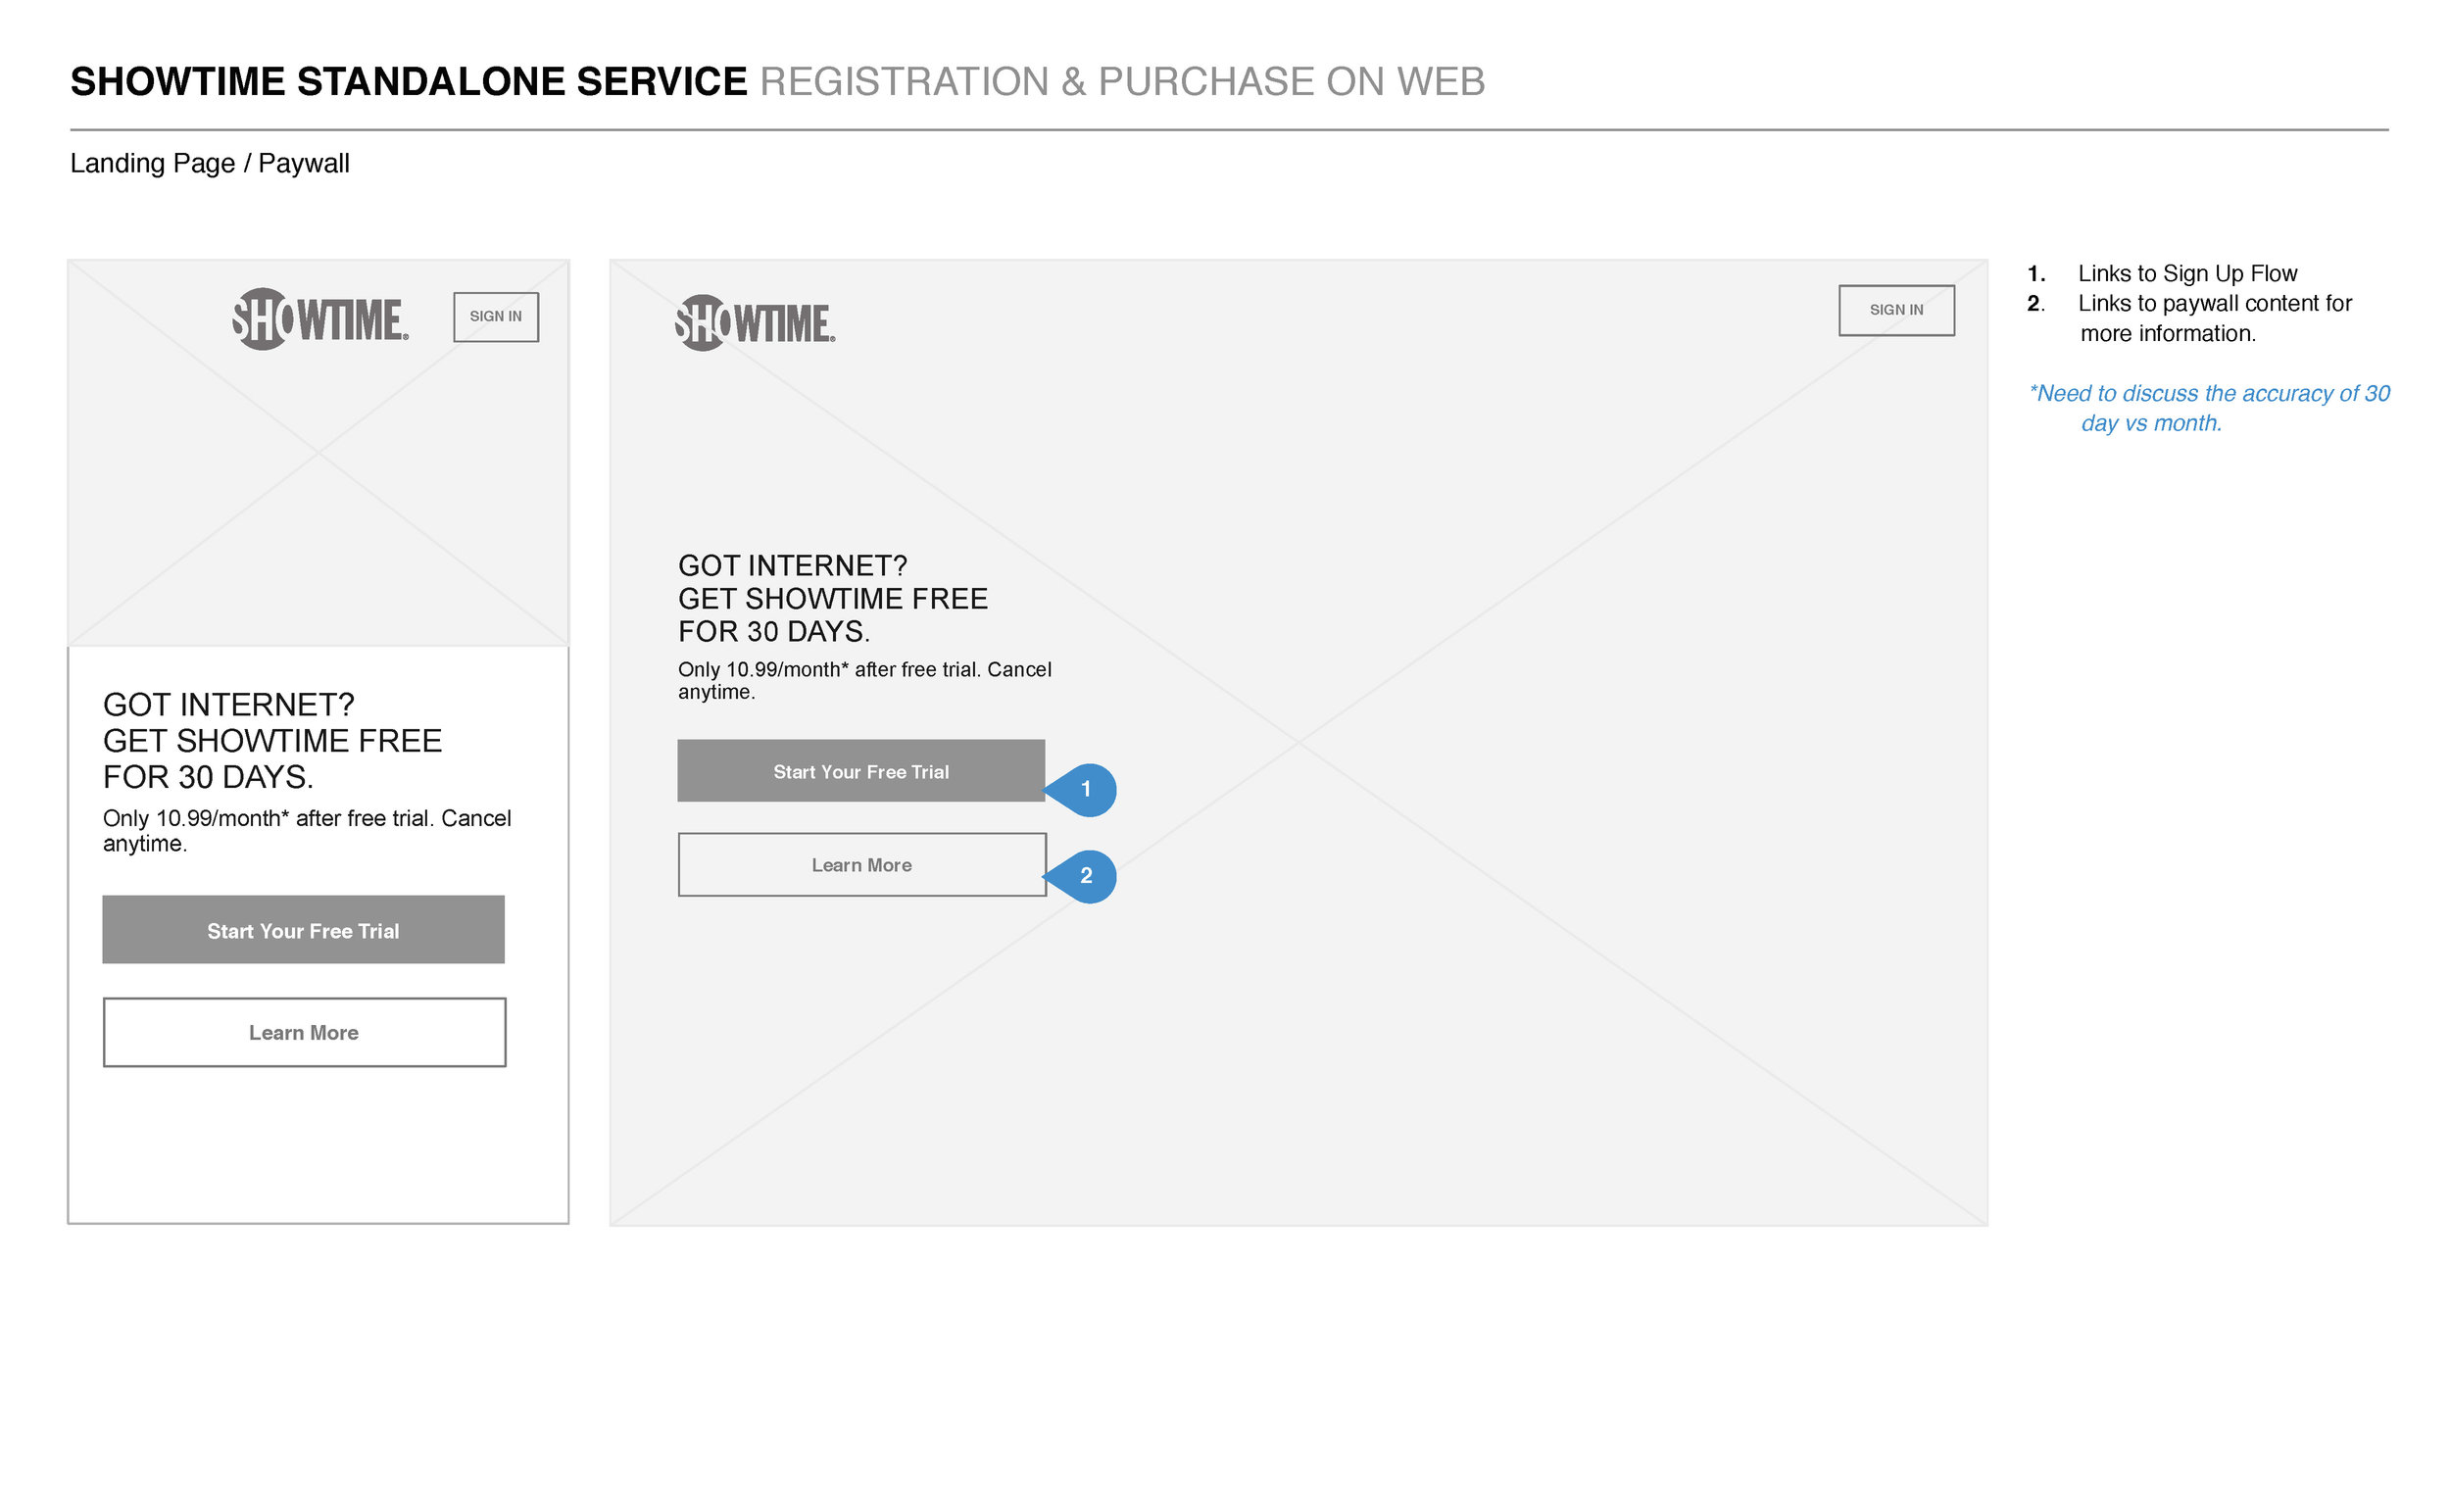 Showtime_Purchase_Web_v9_Page_03.jpg